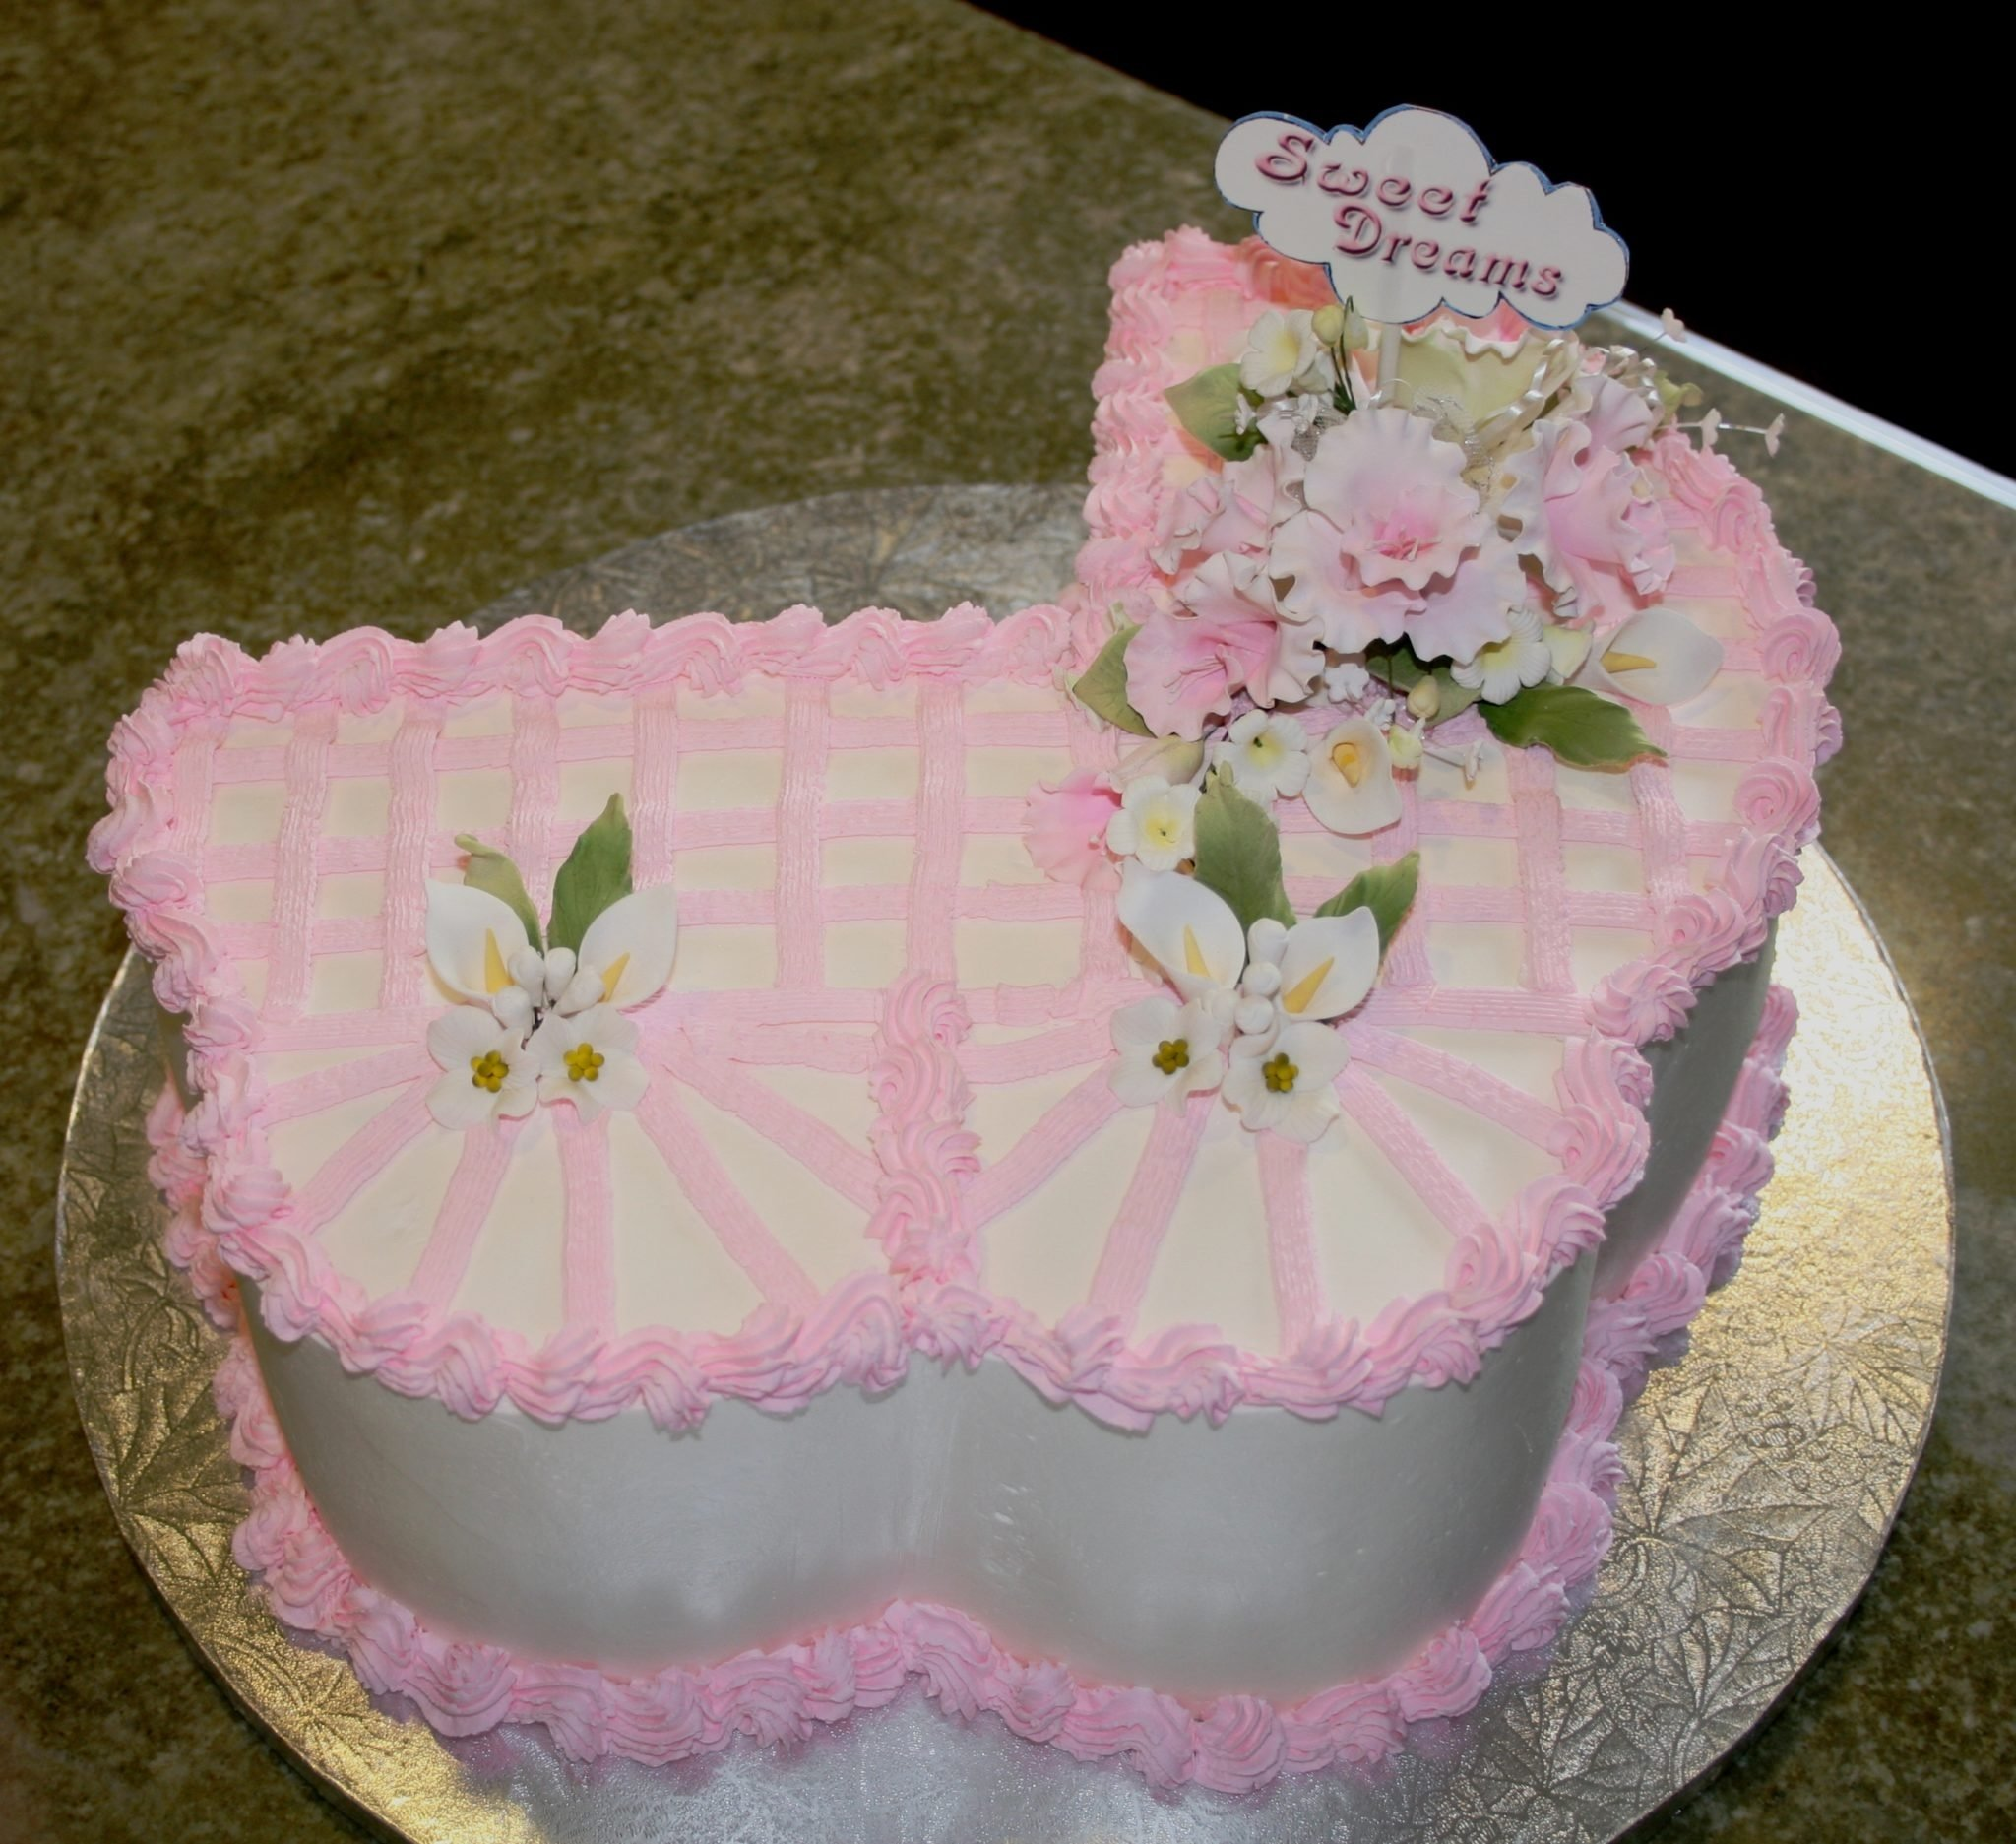 10 Stunning Baby Shower Cake Ideas For A Girl 70 baby shower cakes and cupcakes ideas 7 2021